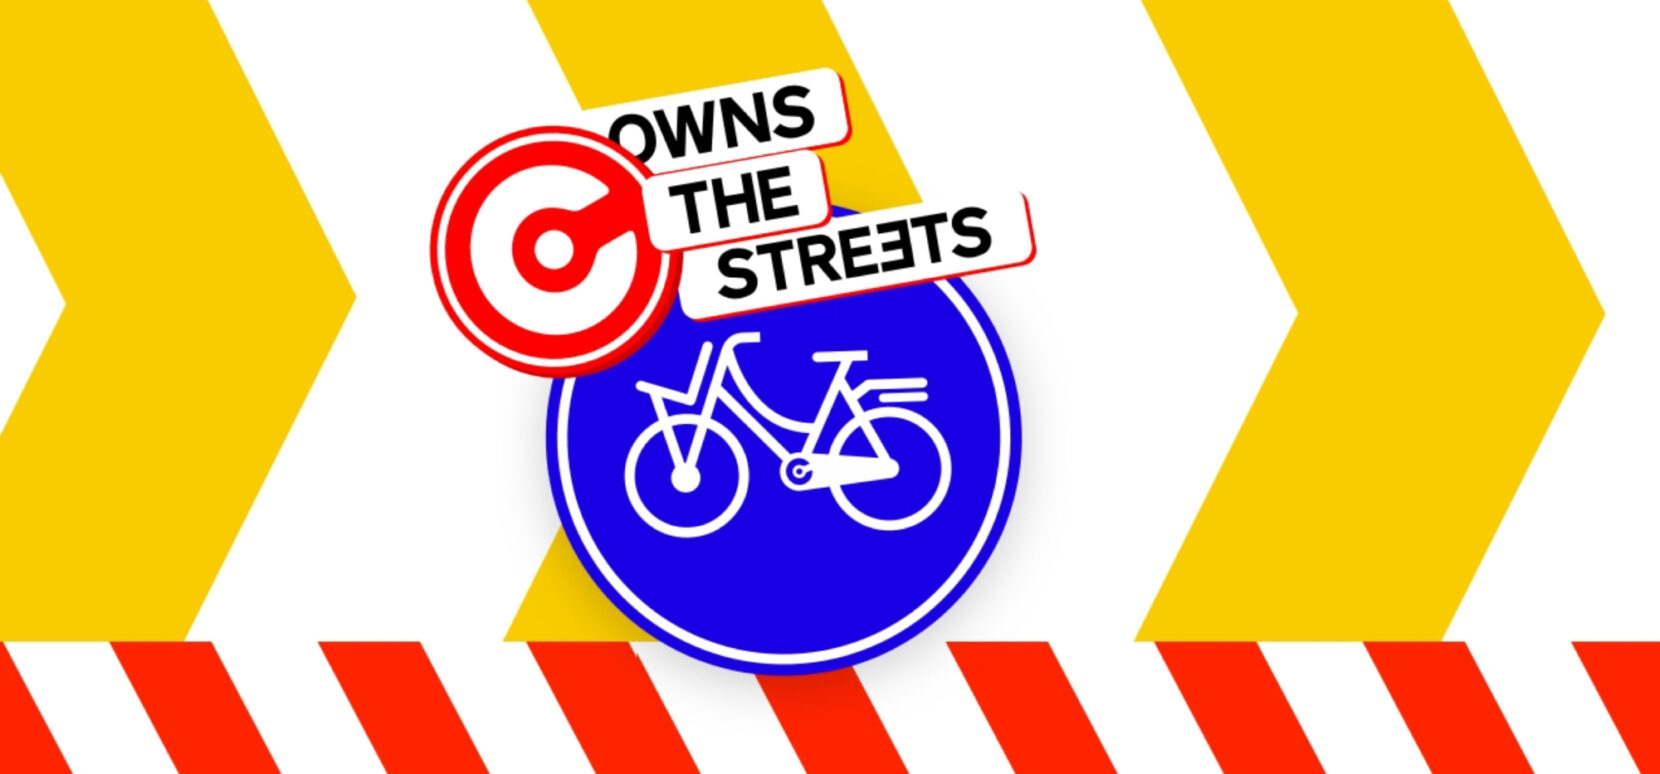 Cortina own the streets case header